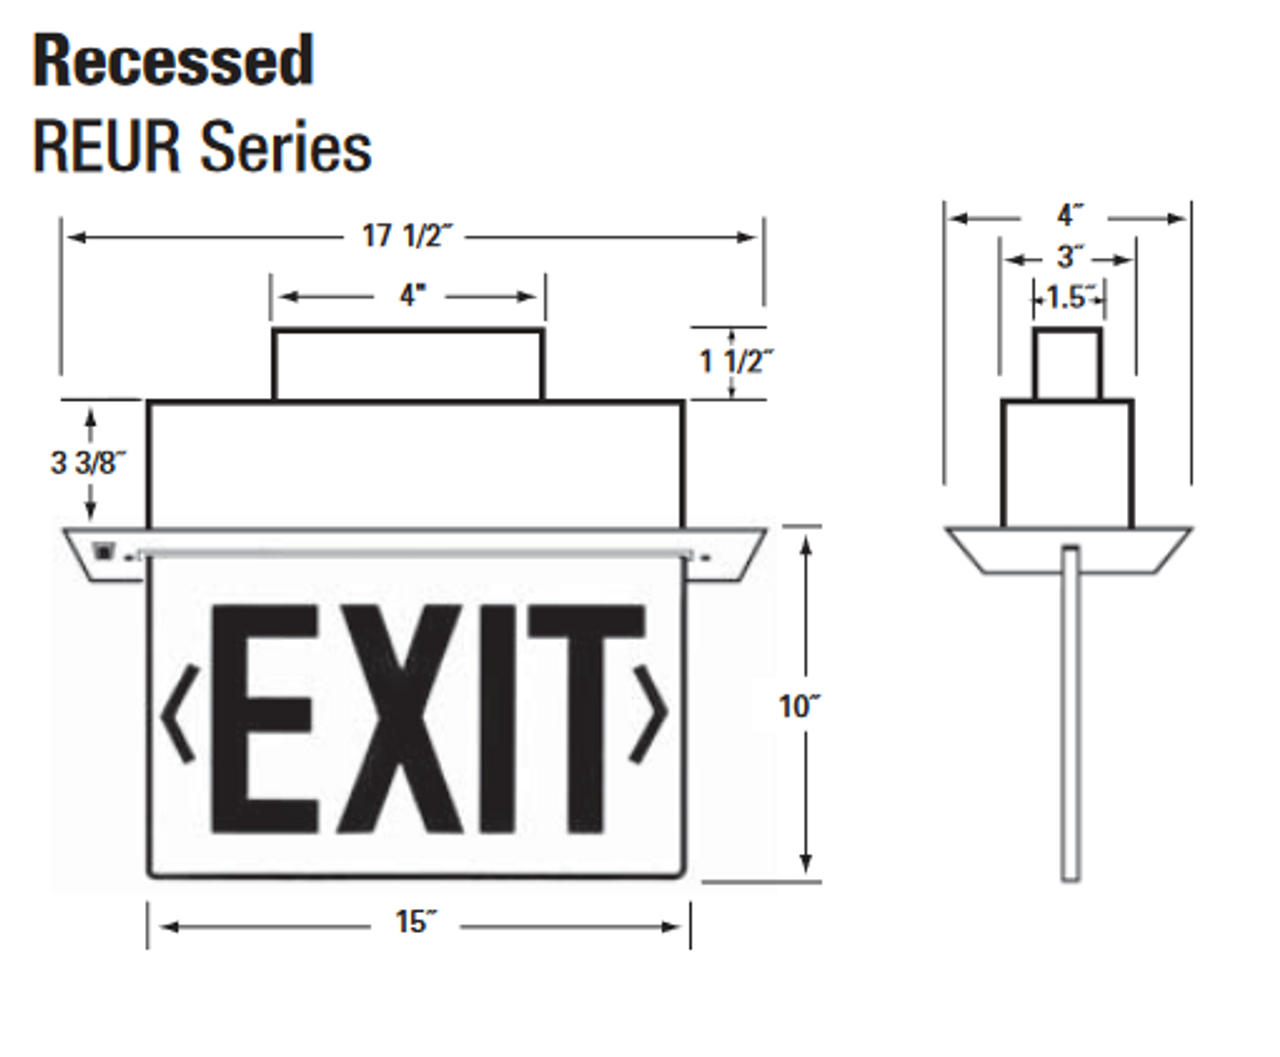 NYCELR-R Recessed Ceiling Mount Edge-lit Exit Signs